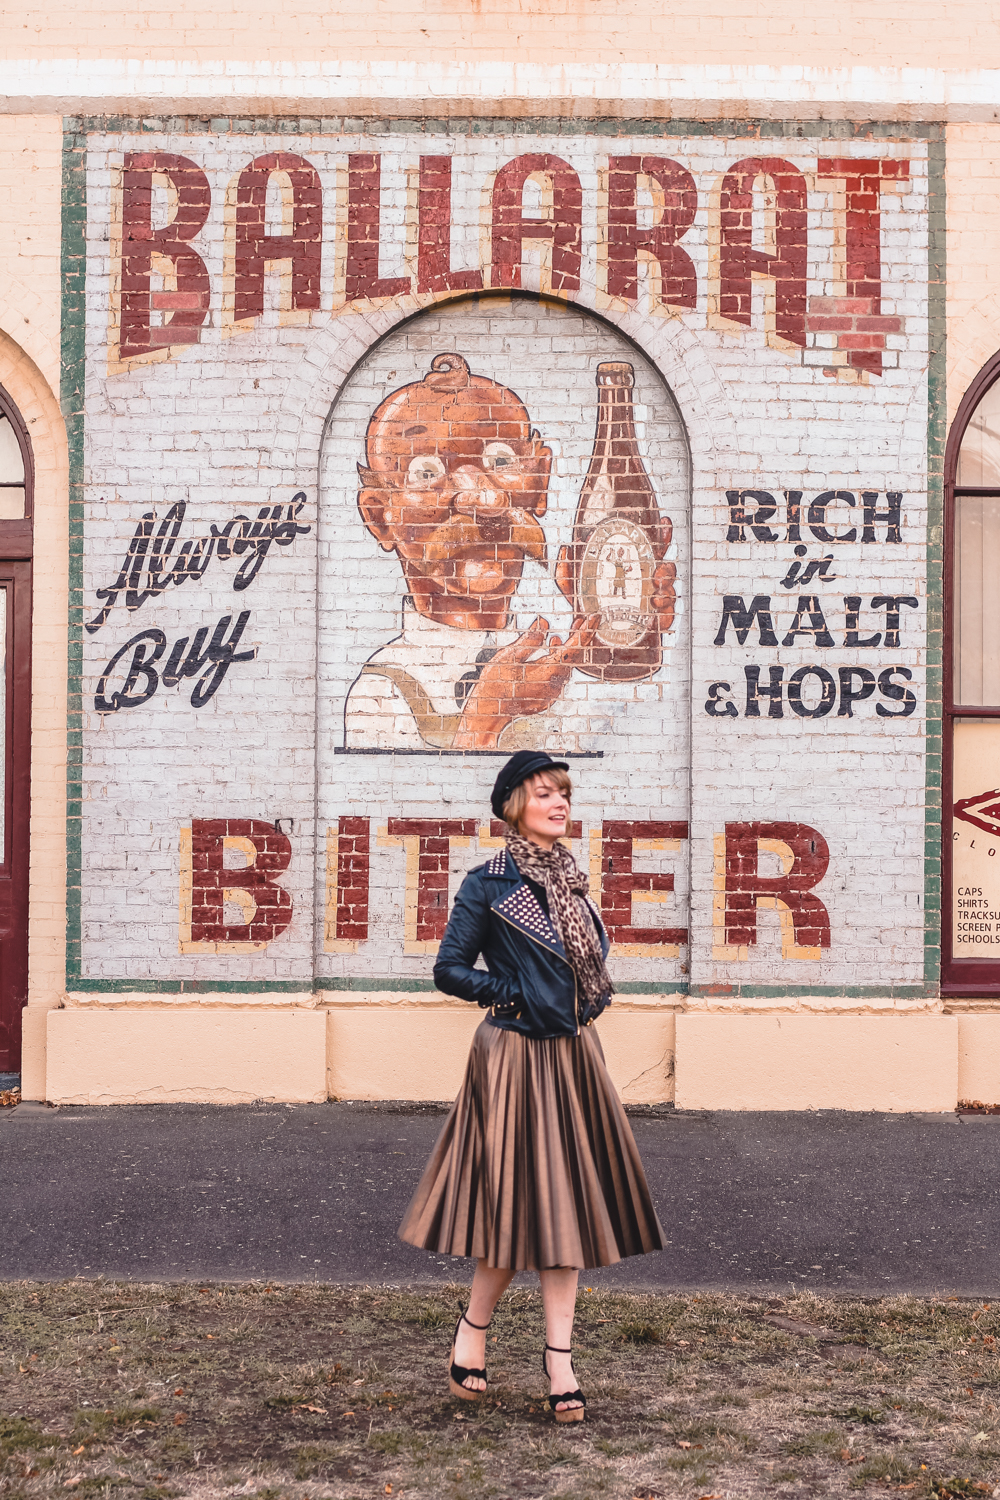 Liana of @findingfemme wearing ASOS pleated skirt at the site of an historic Ballarat Bitter mural